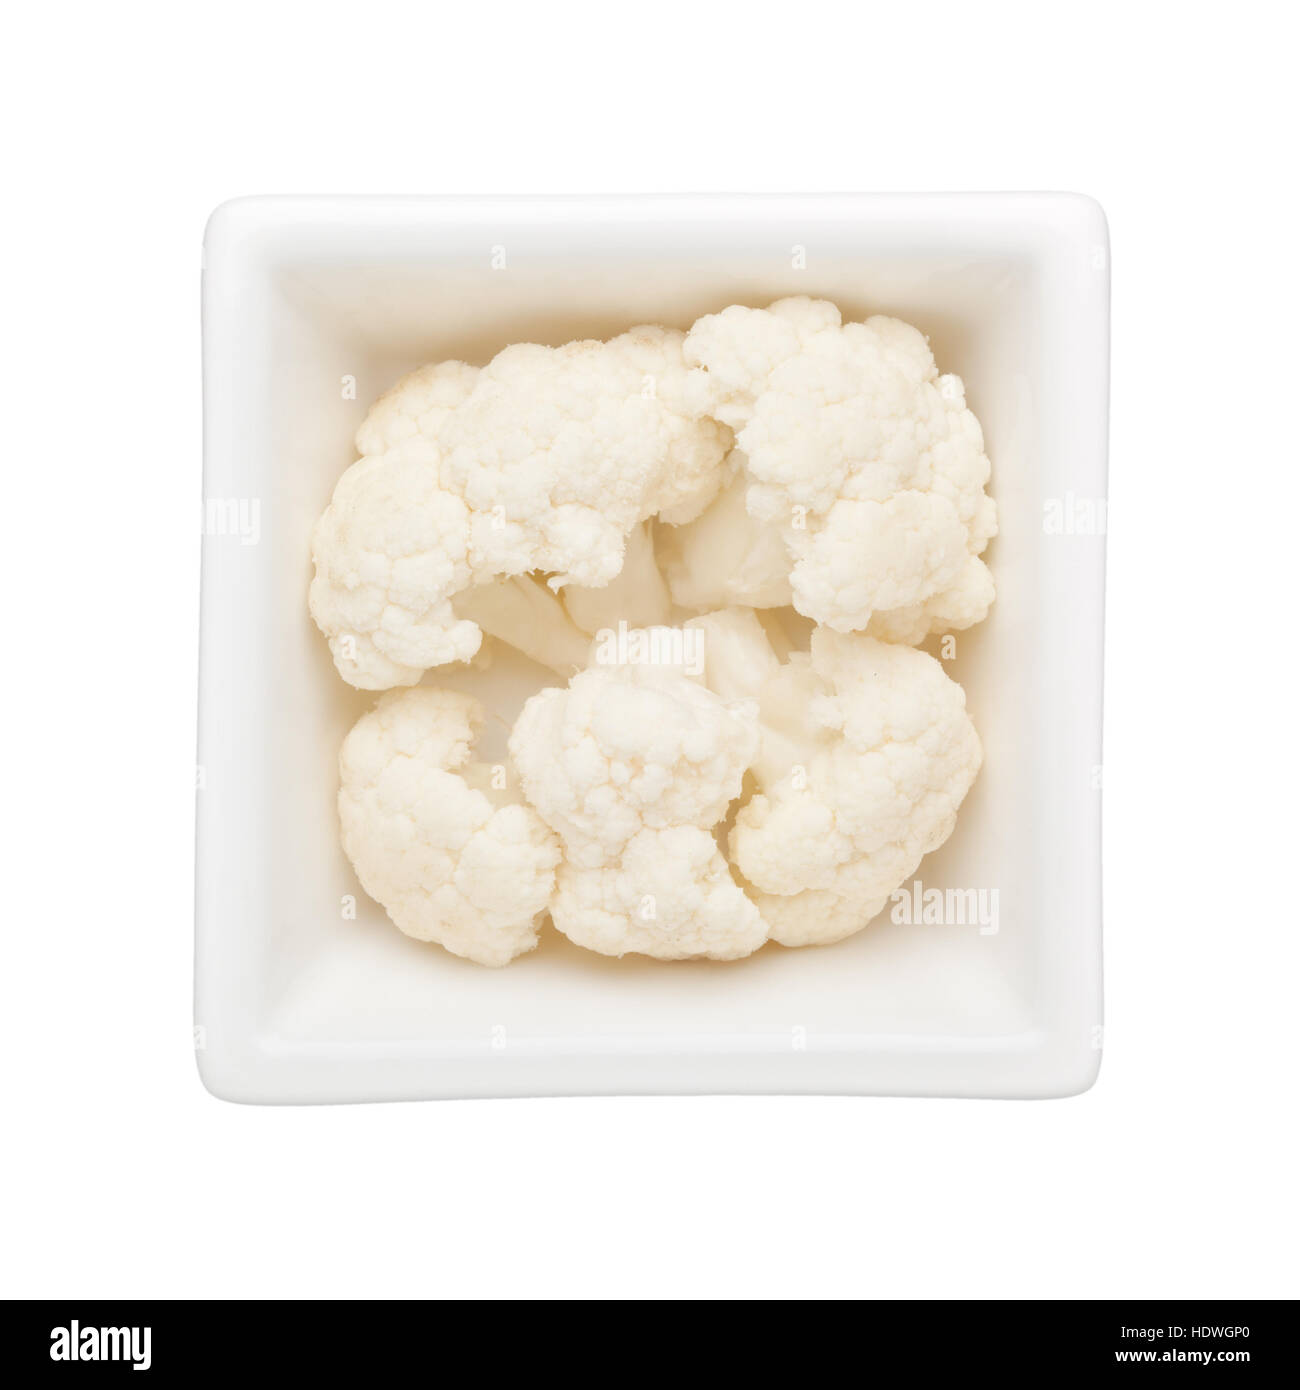 Cauliflower in a square bowl isolated on white background - Stock Image